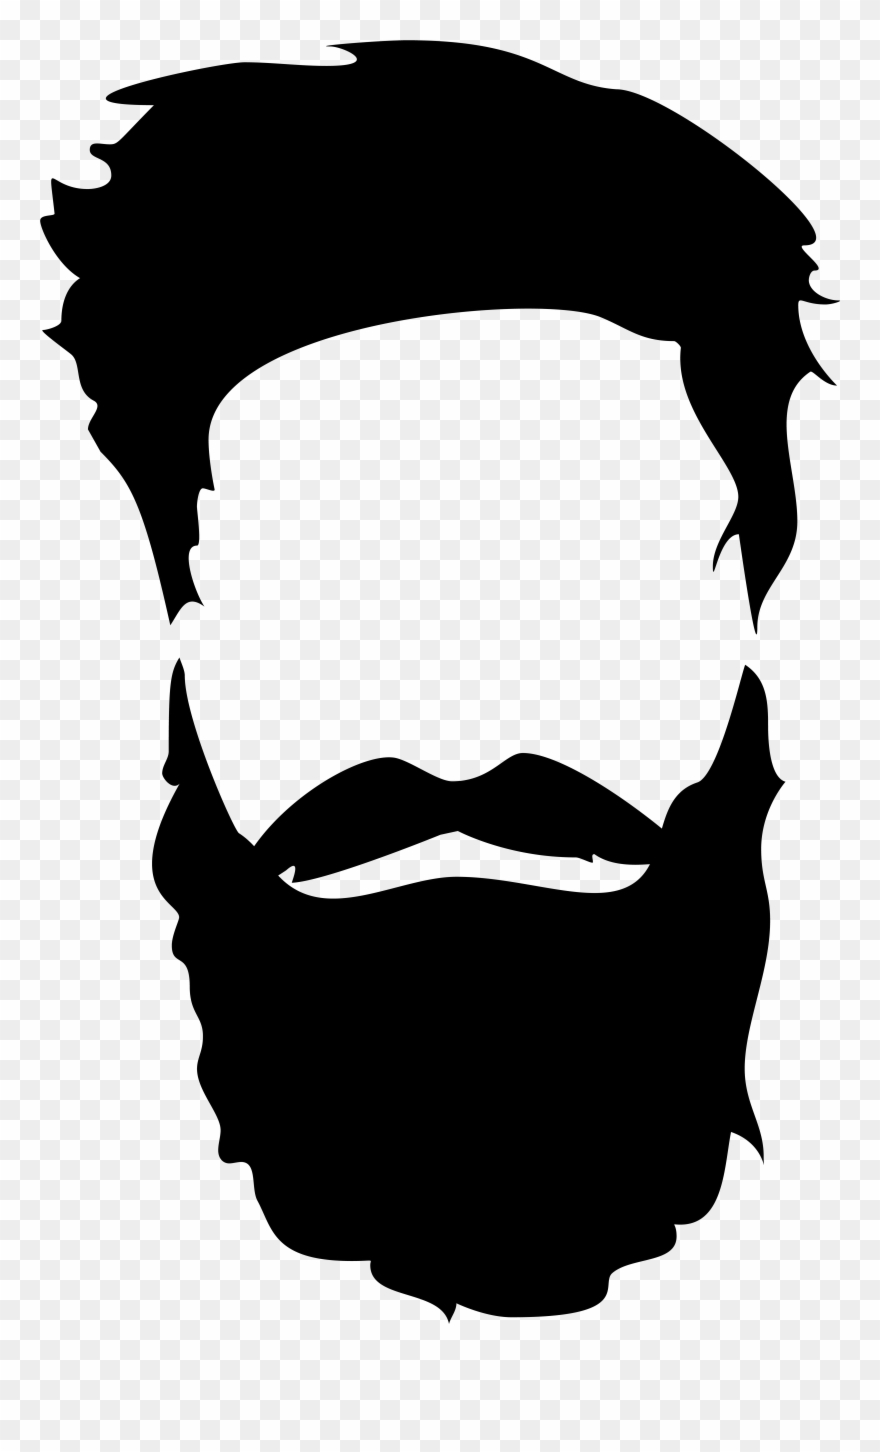 Hair Beard Png Clip Art Gallery Yopriceville.